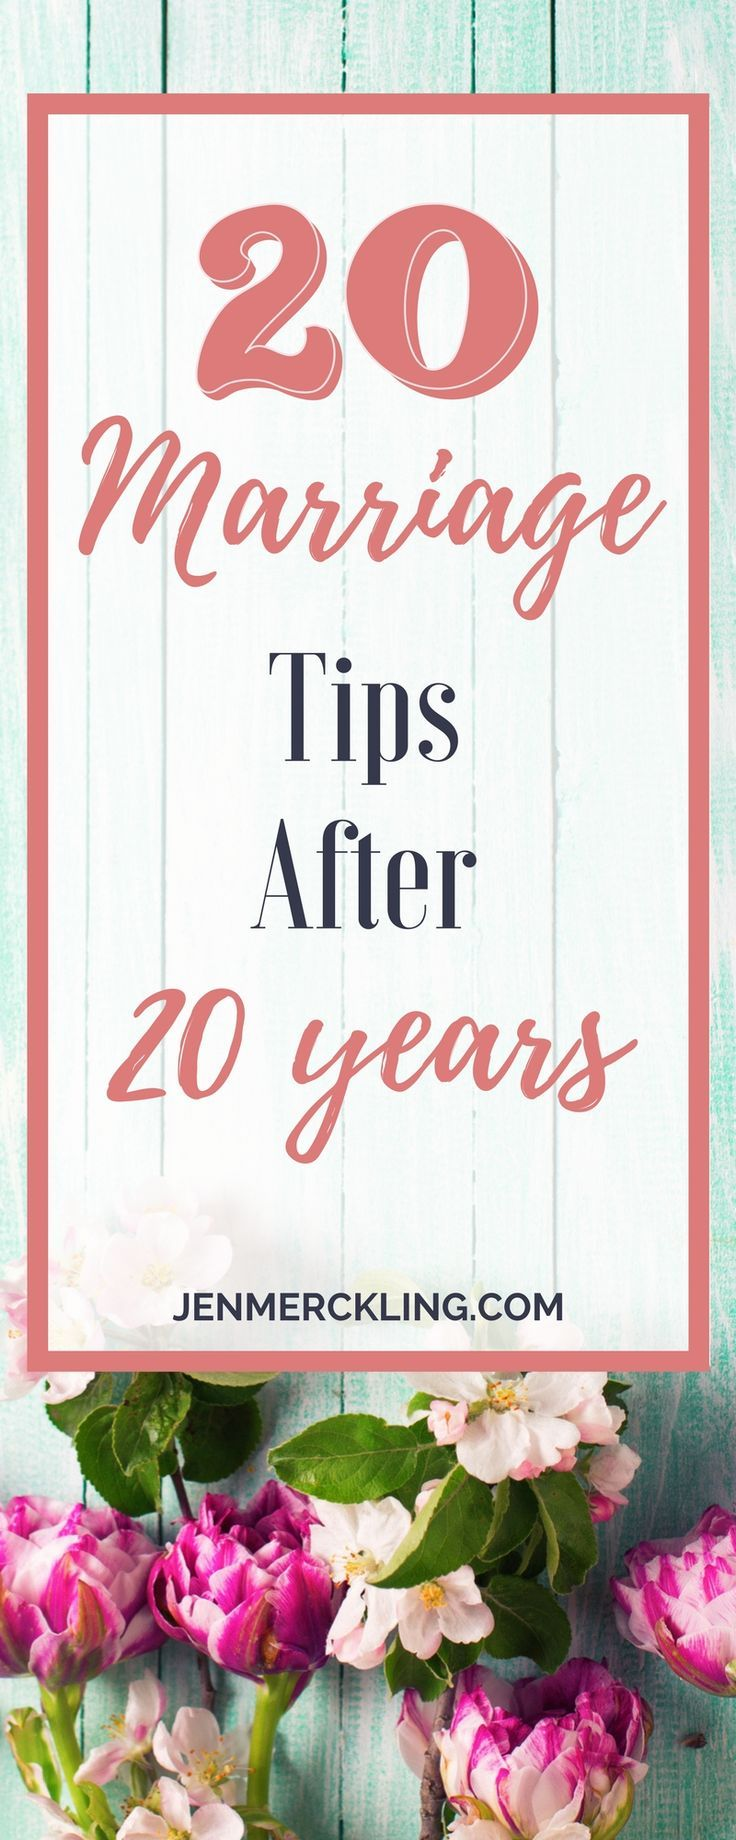 Last Summer We Celebrated Our 20th Wedding Anniversary And I Wanted To Share Some Reflections On What We Ve L Marriage Tips Marriage Help 20 Years Of Marriage